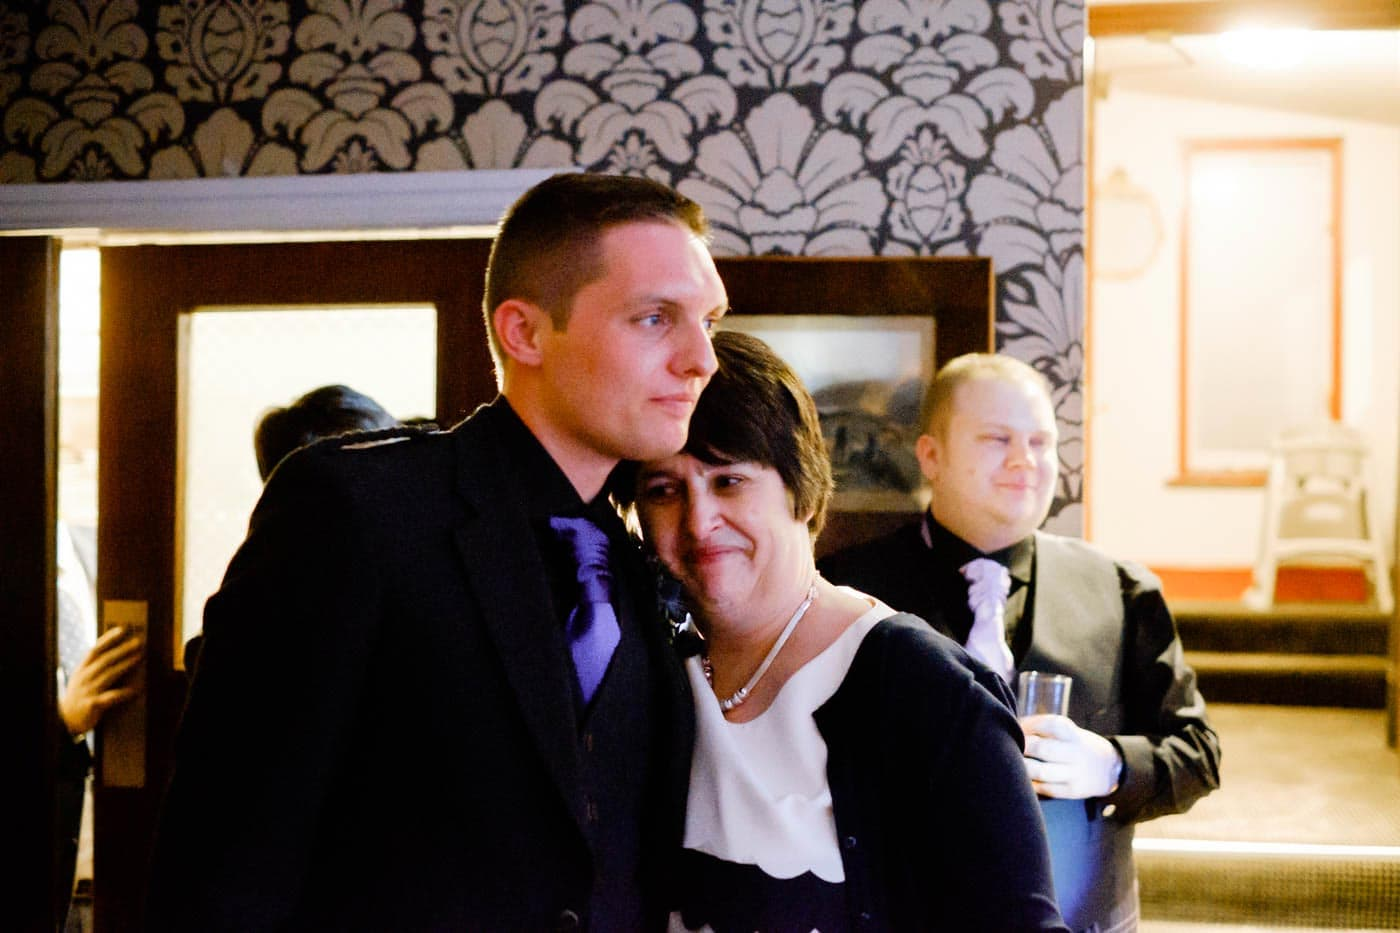 Groom and mother-in-law